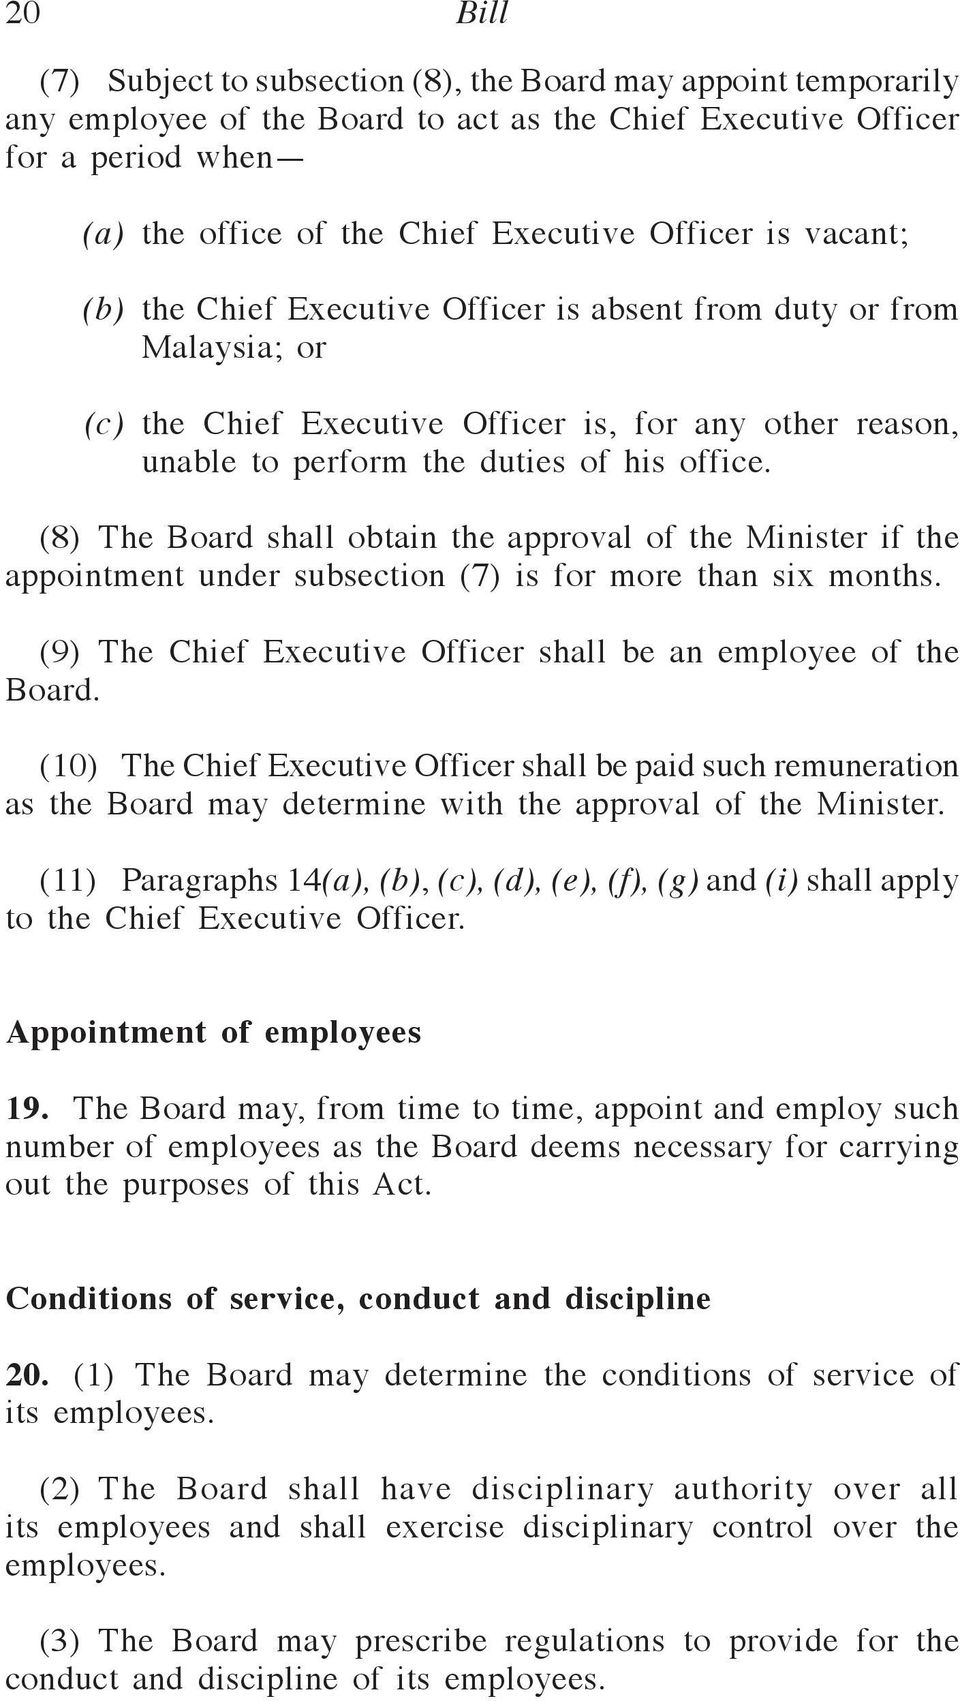 (8) The Board shall obtain the approval of the Minister if the appointment under subsection (7) is for more than six months. (9) The Chief Executive Officer shall be an employee of the Board.